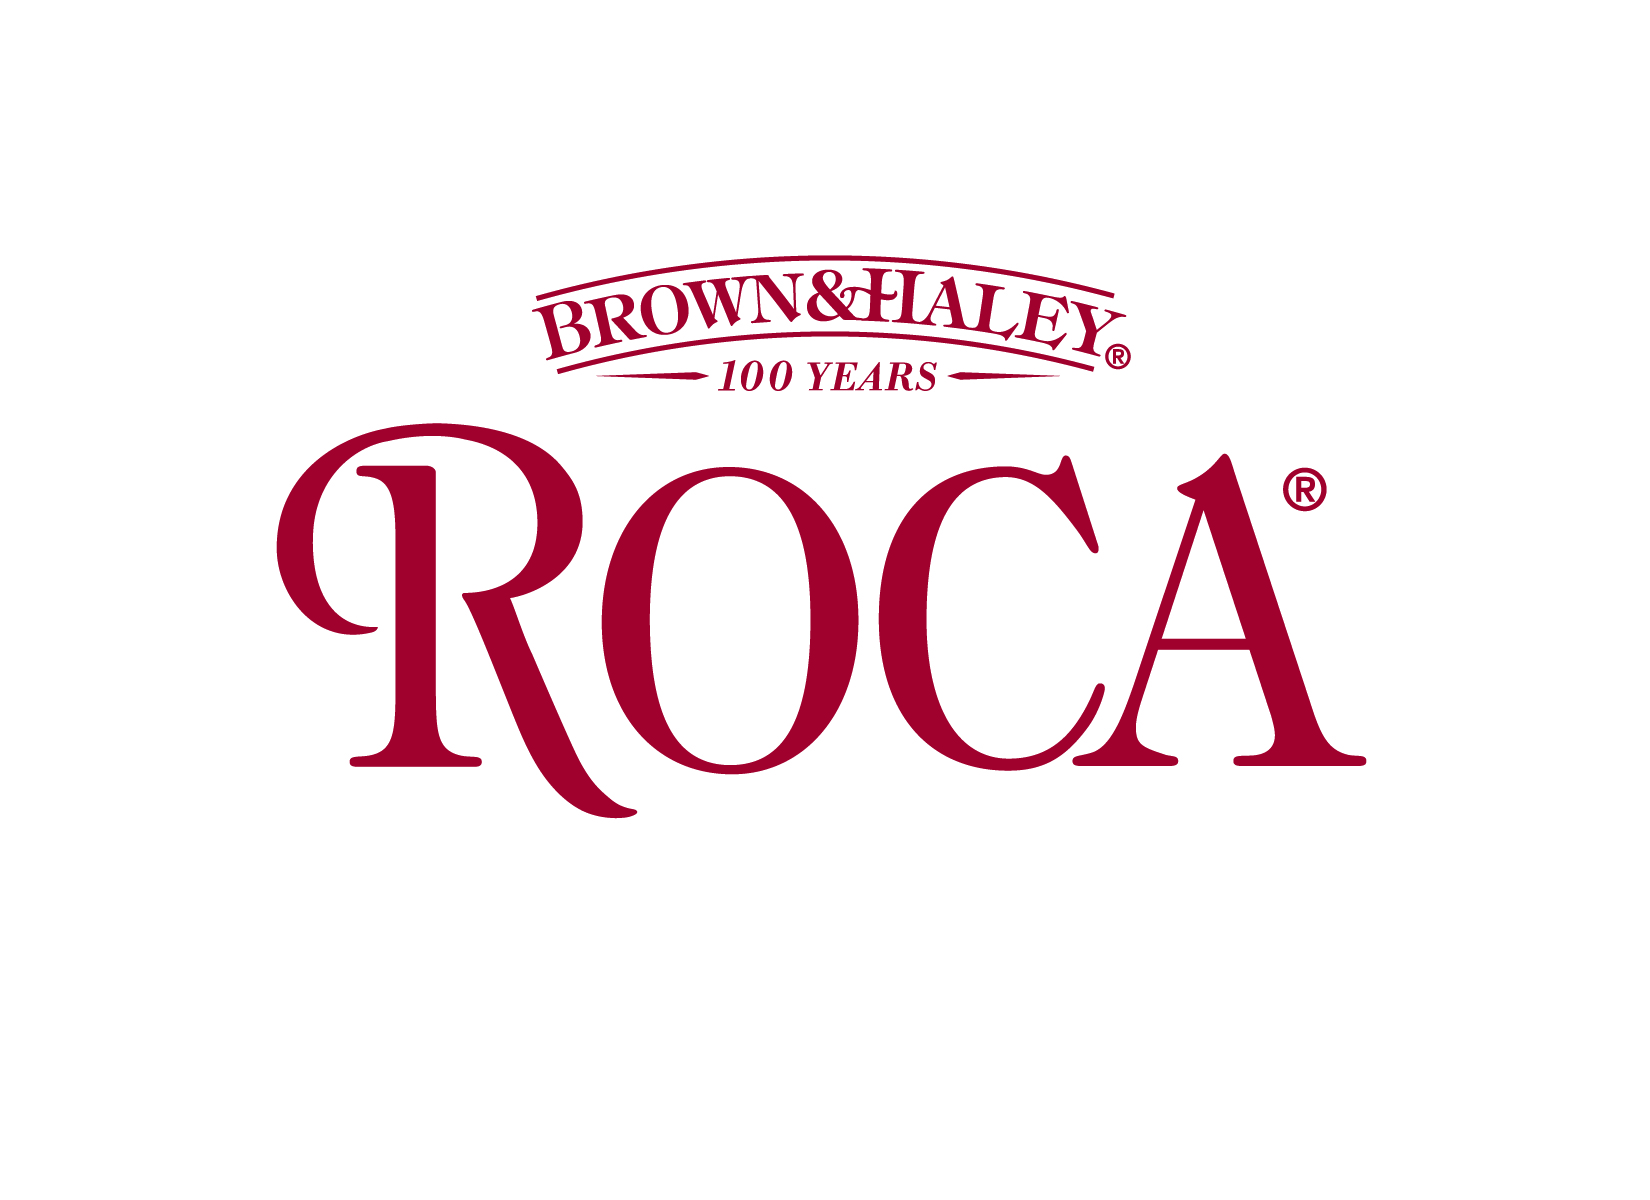 Brown & Halley/Almond Roca